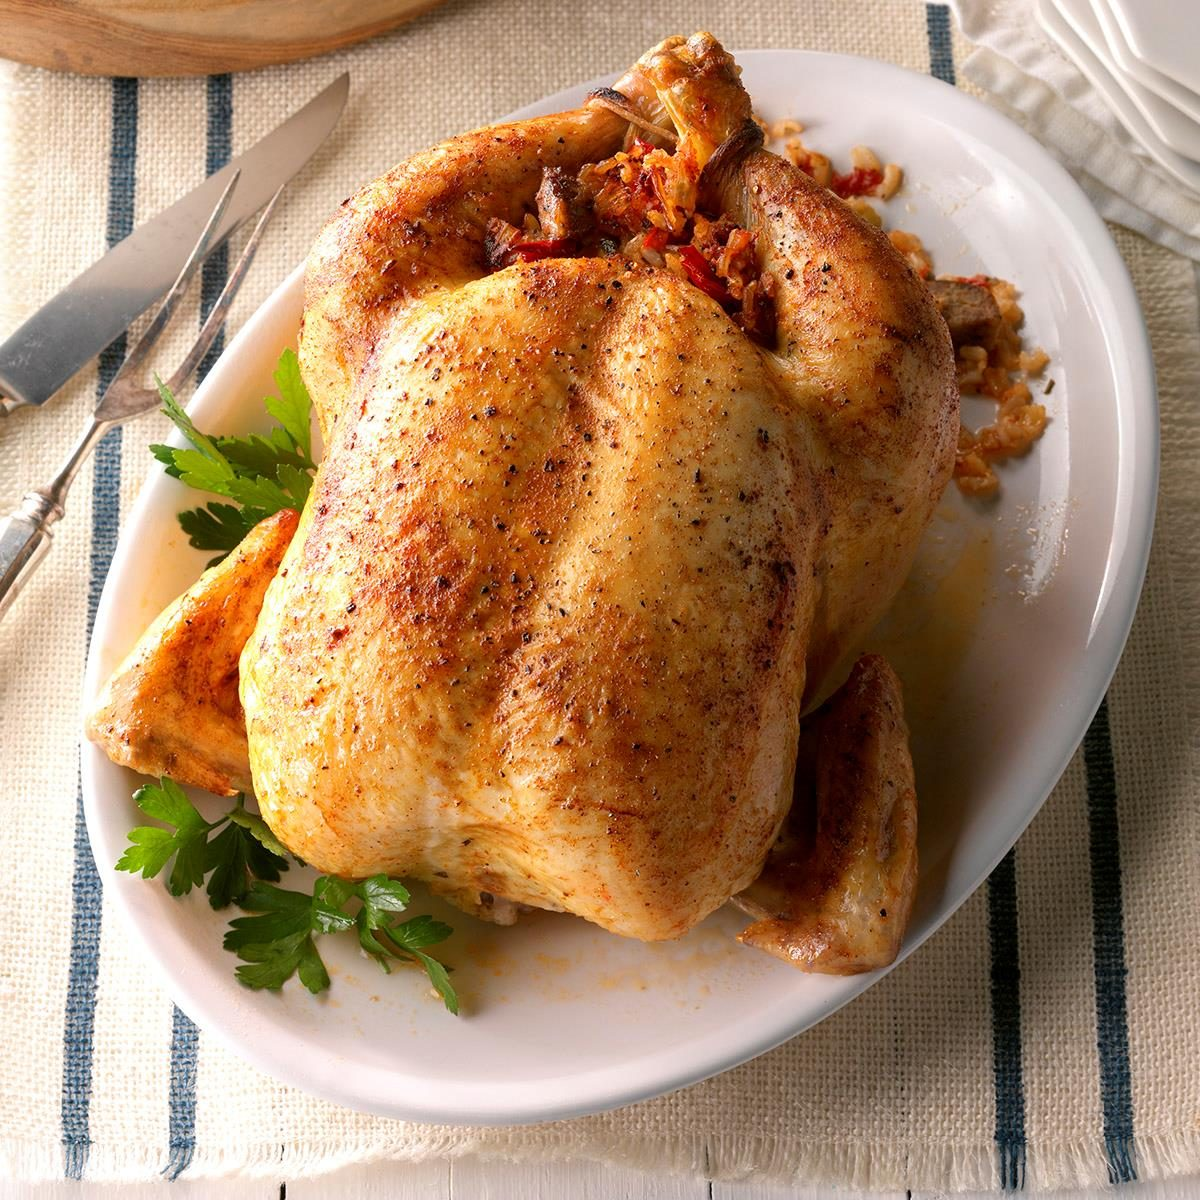 September: Roast Chicken with Creole Stuffing